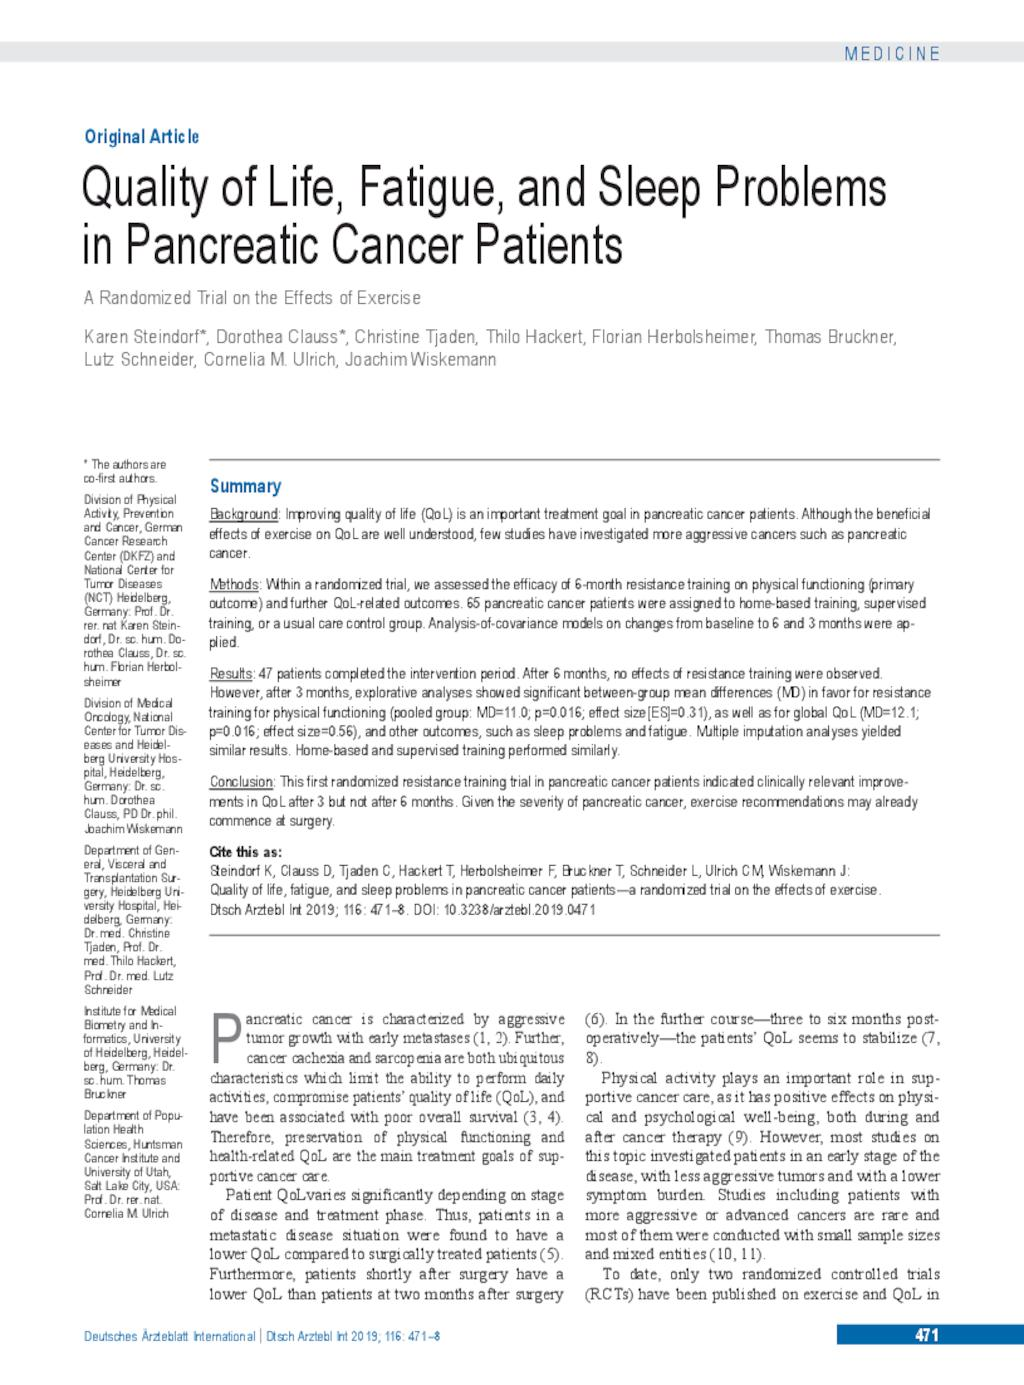 pancreatic cancer quality of life